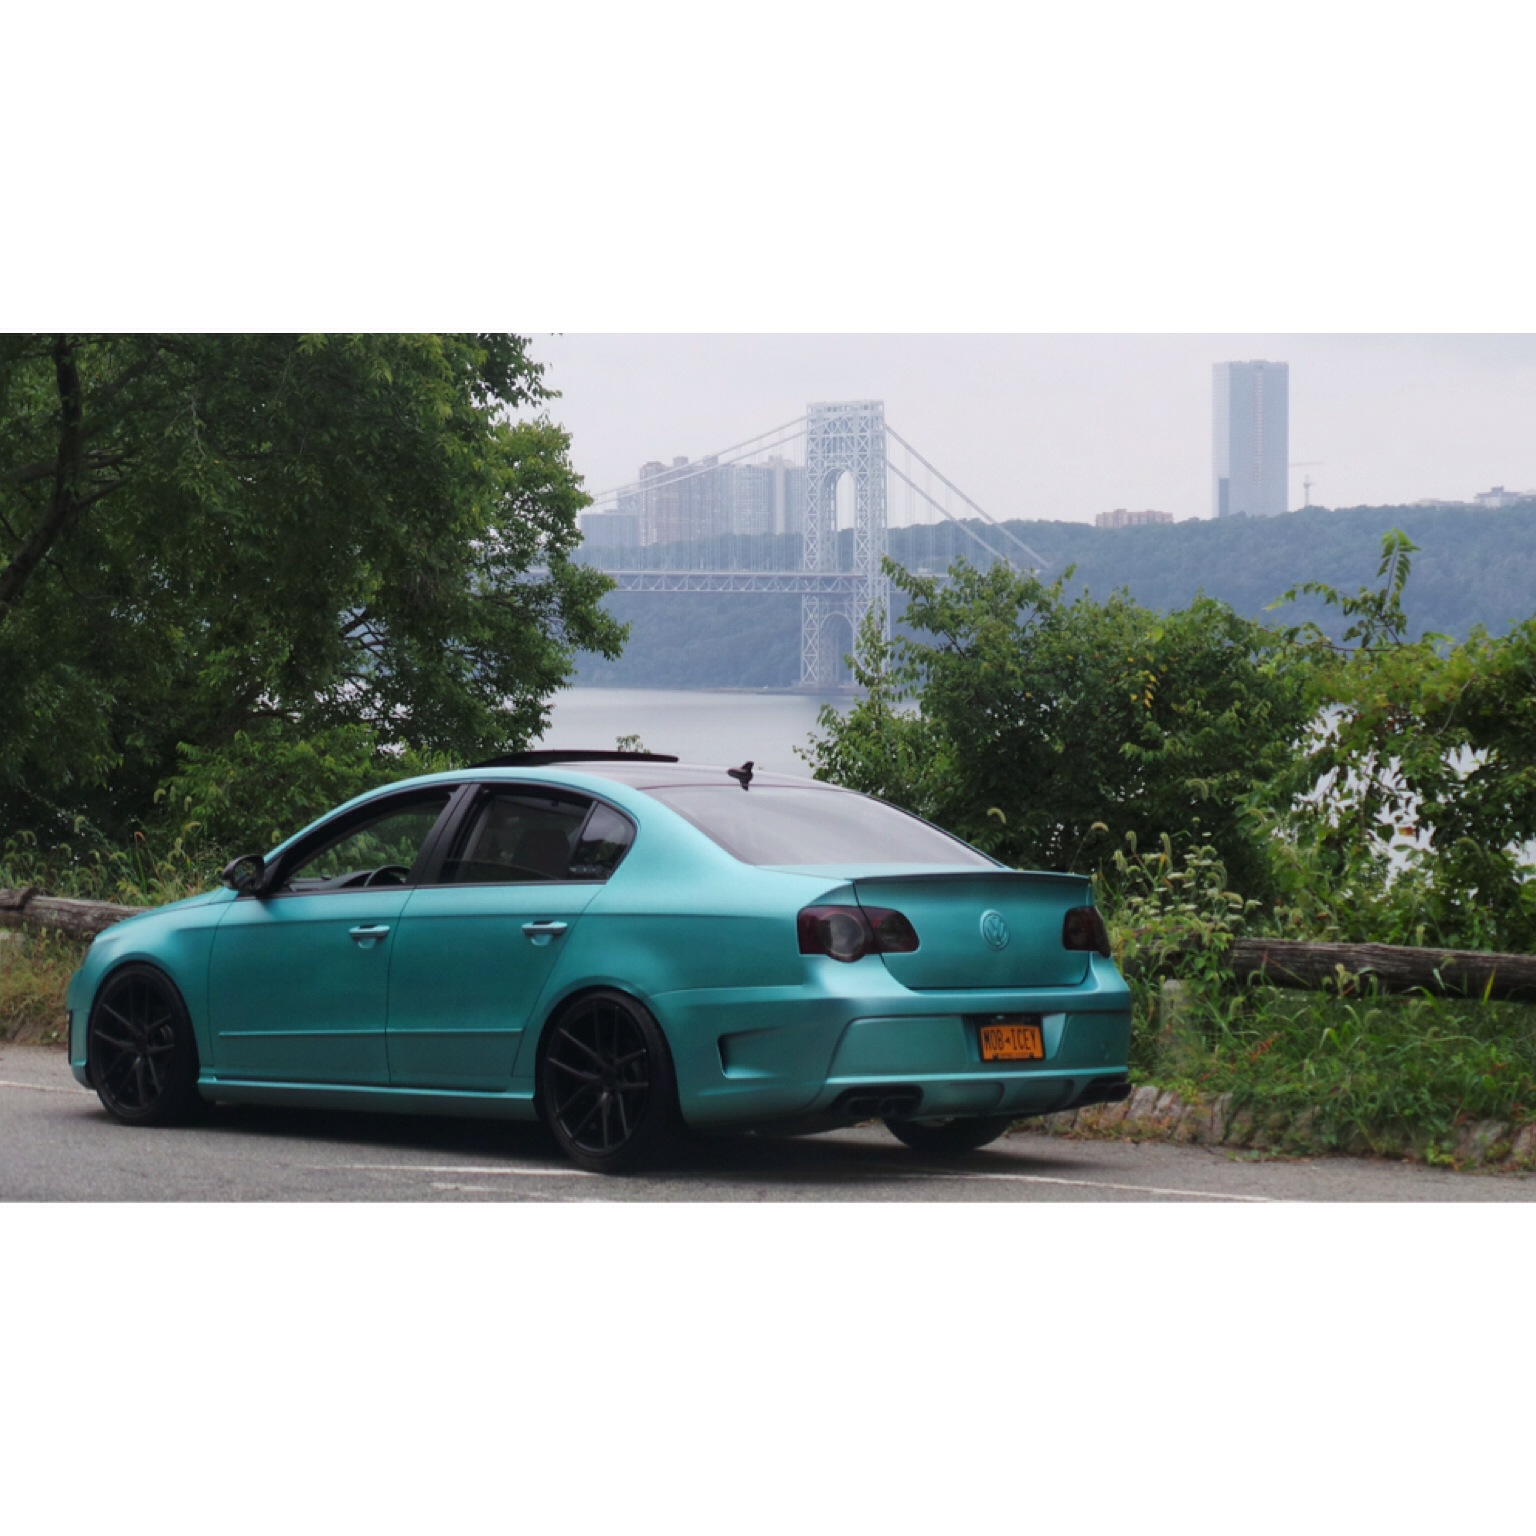 Sea Foam Green Candy Pearl Plasti Dip - 19069505